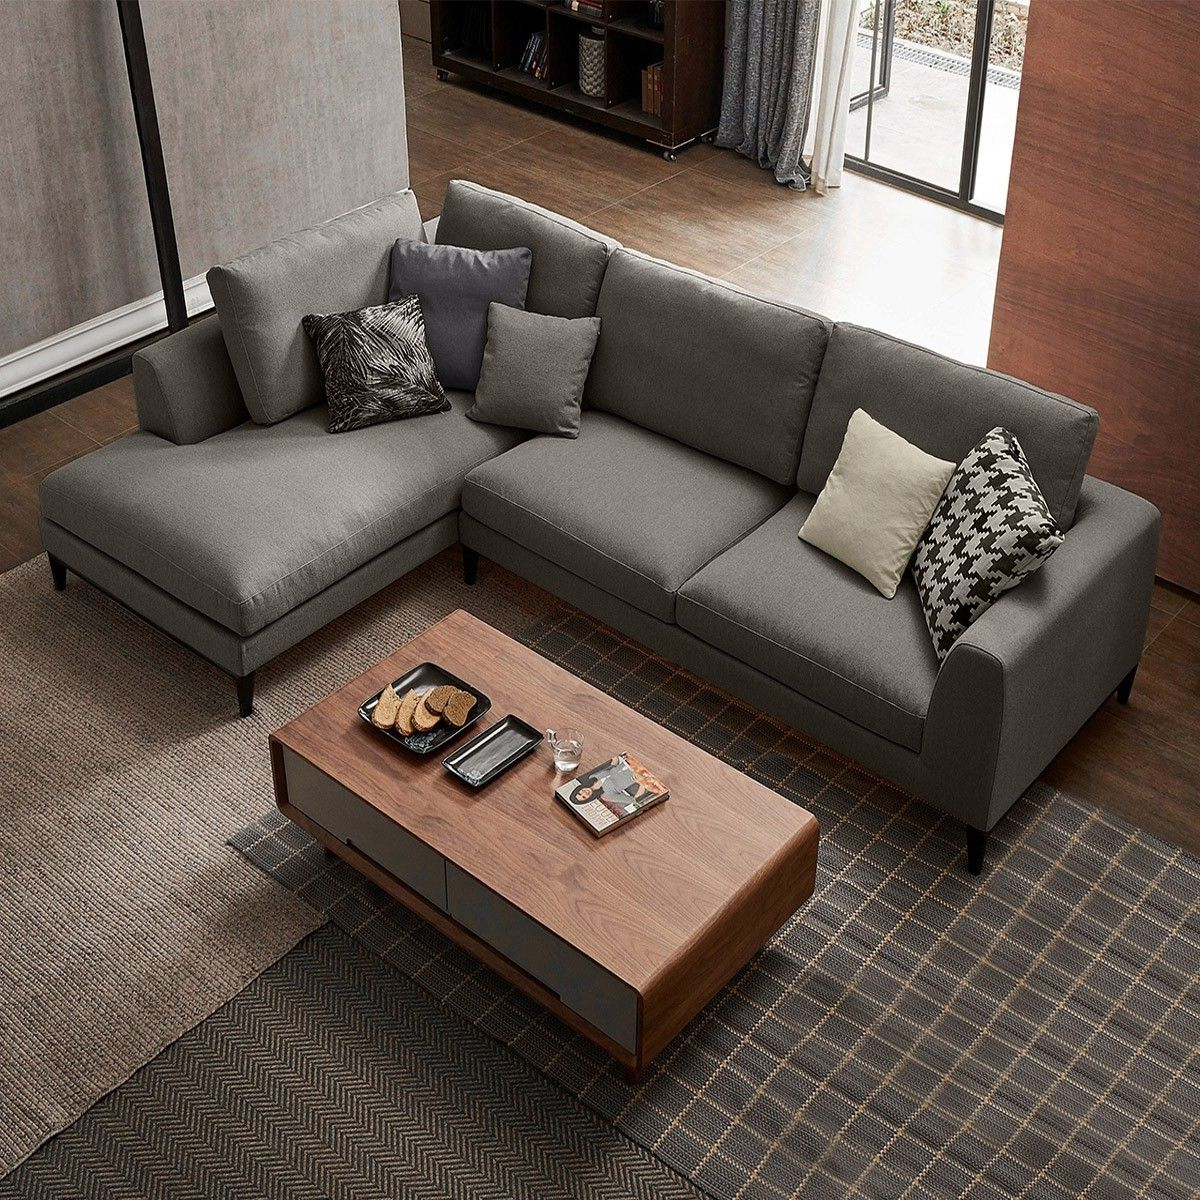 2Pc Connel Modern Chaise Sectional Sofas Black With Regard To Most Up To Date Contemporary Style 2 Piece L Shape Gray Linen Sectional (View 16 of 25)